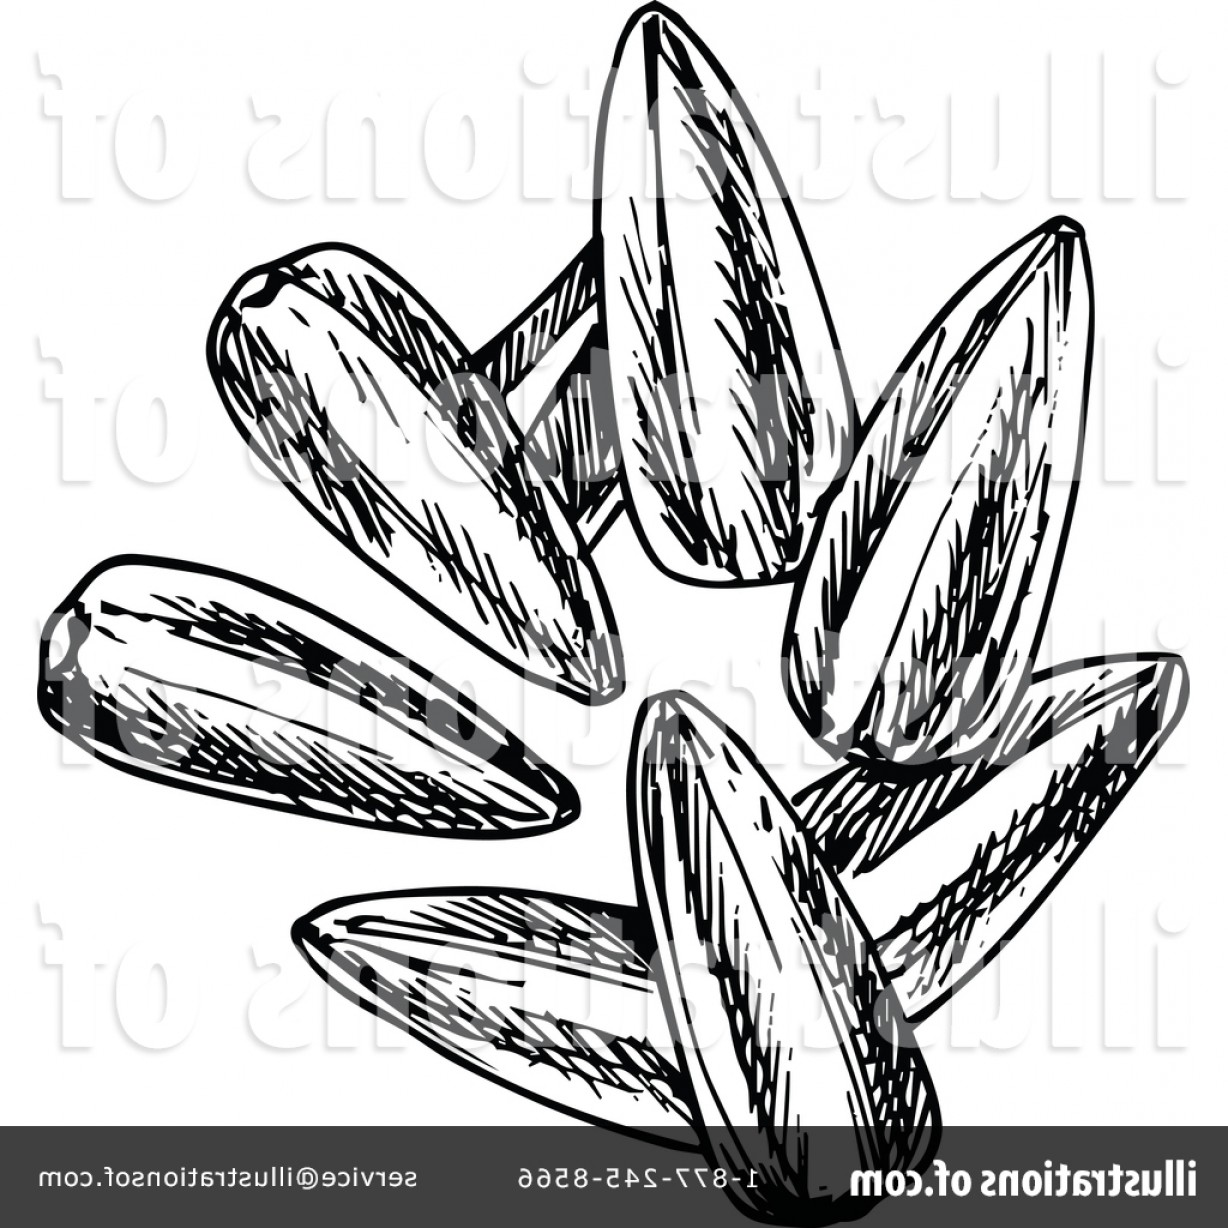 Vector Black And White Sunflower Seed: Royalty Free Sunflower Seeds Clipart Illustration